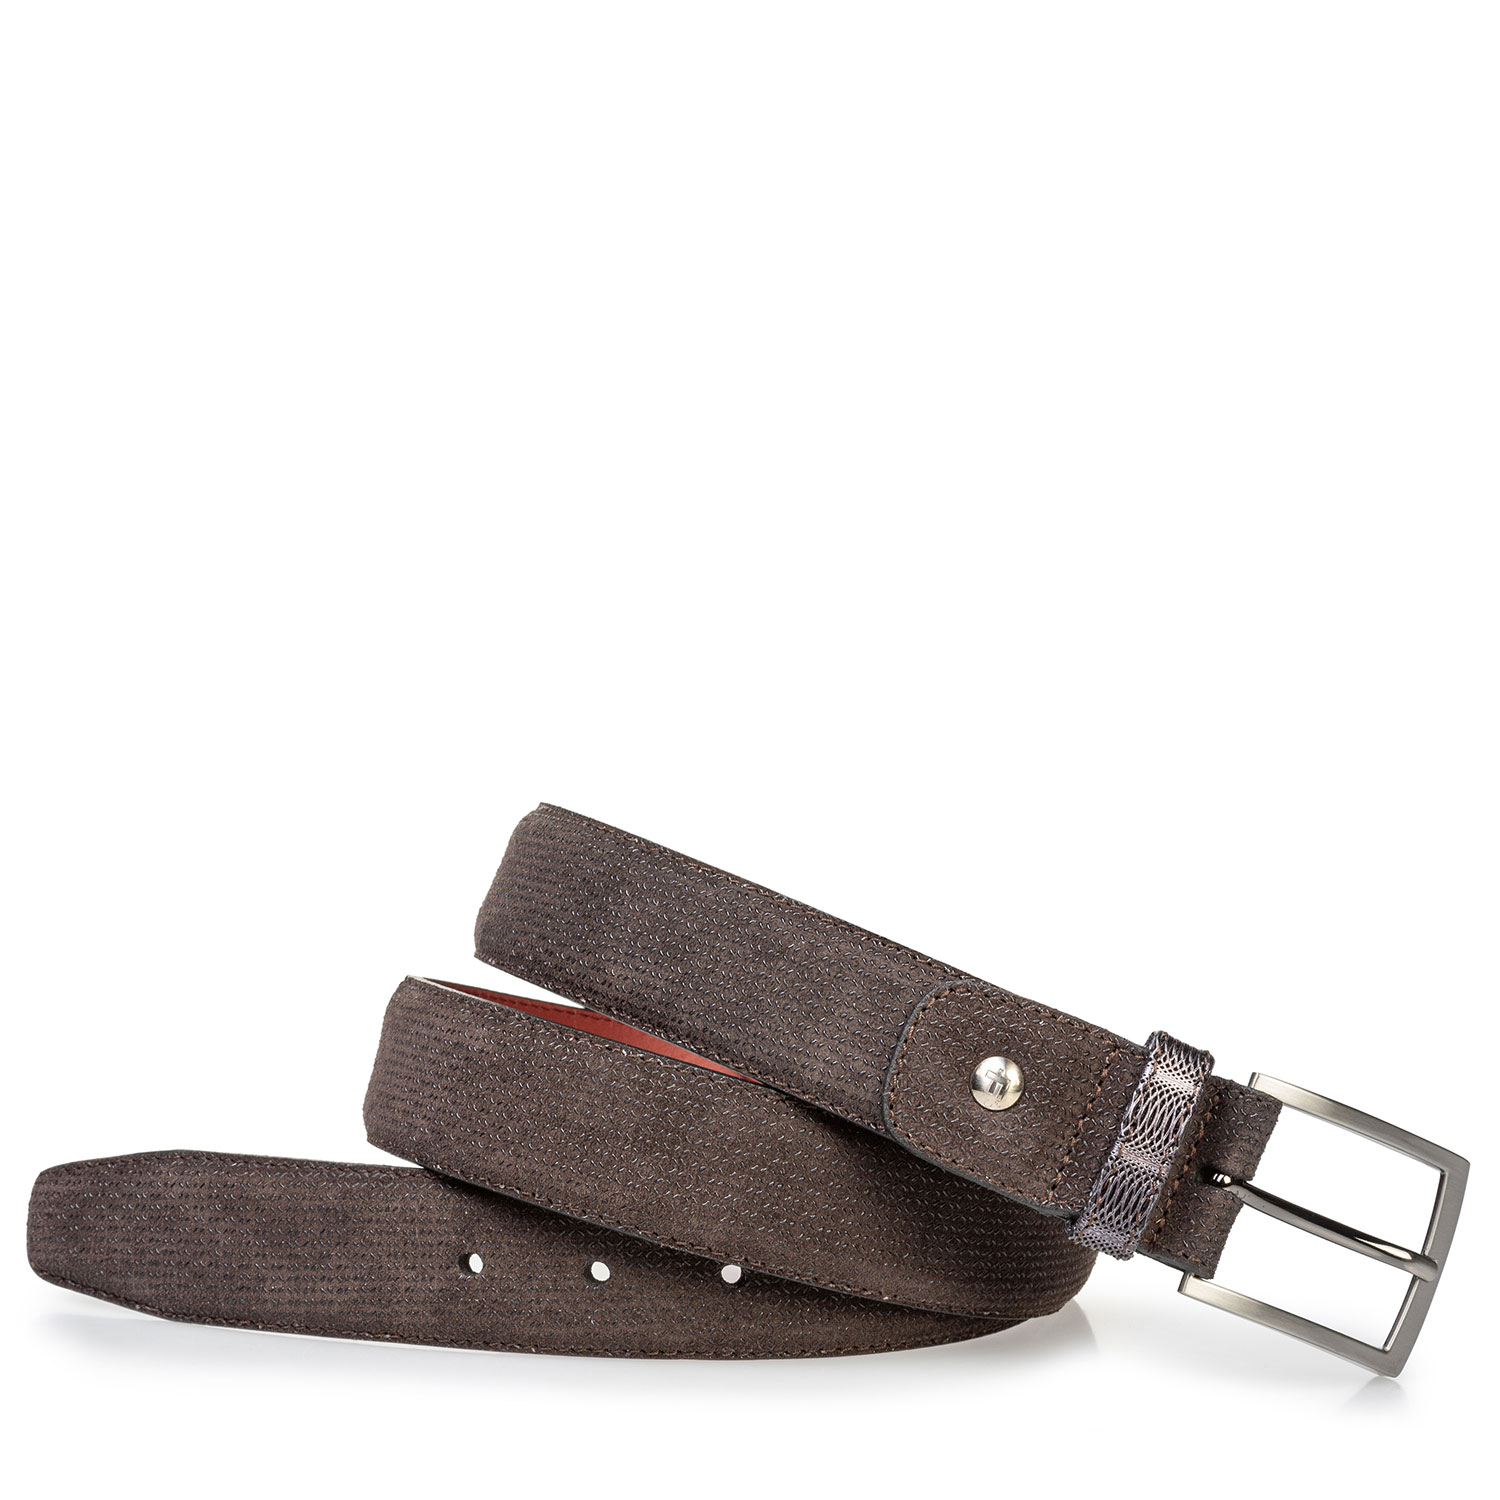 75188/75 - Suede leather belt dark brown with print